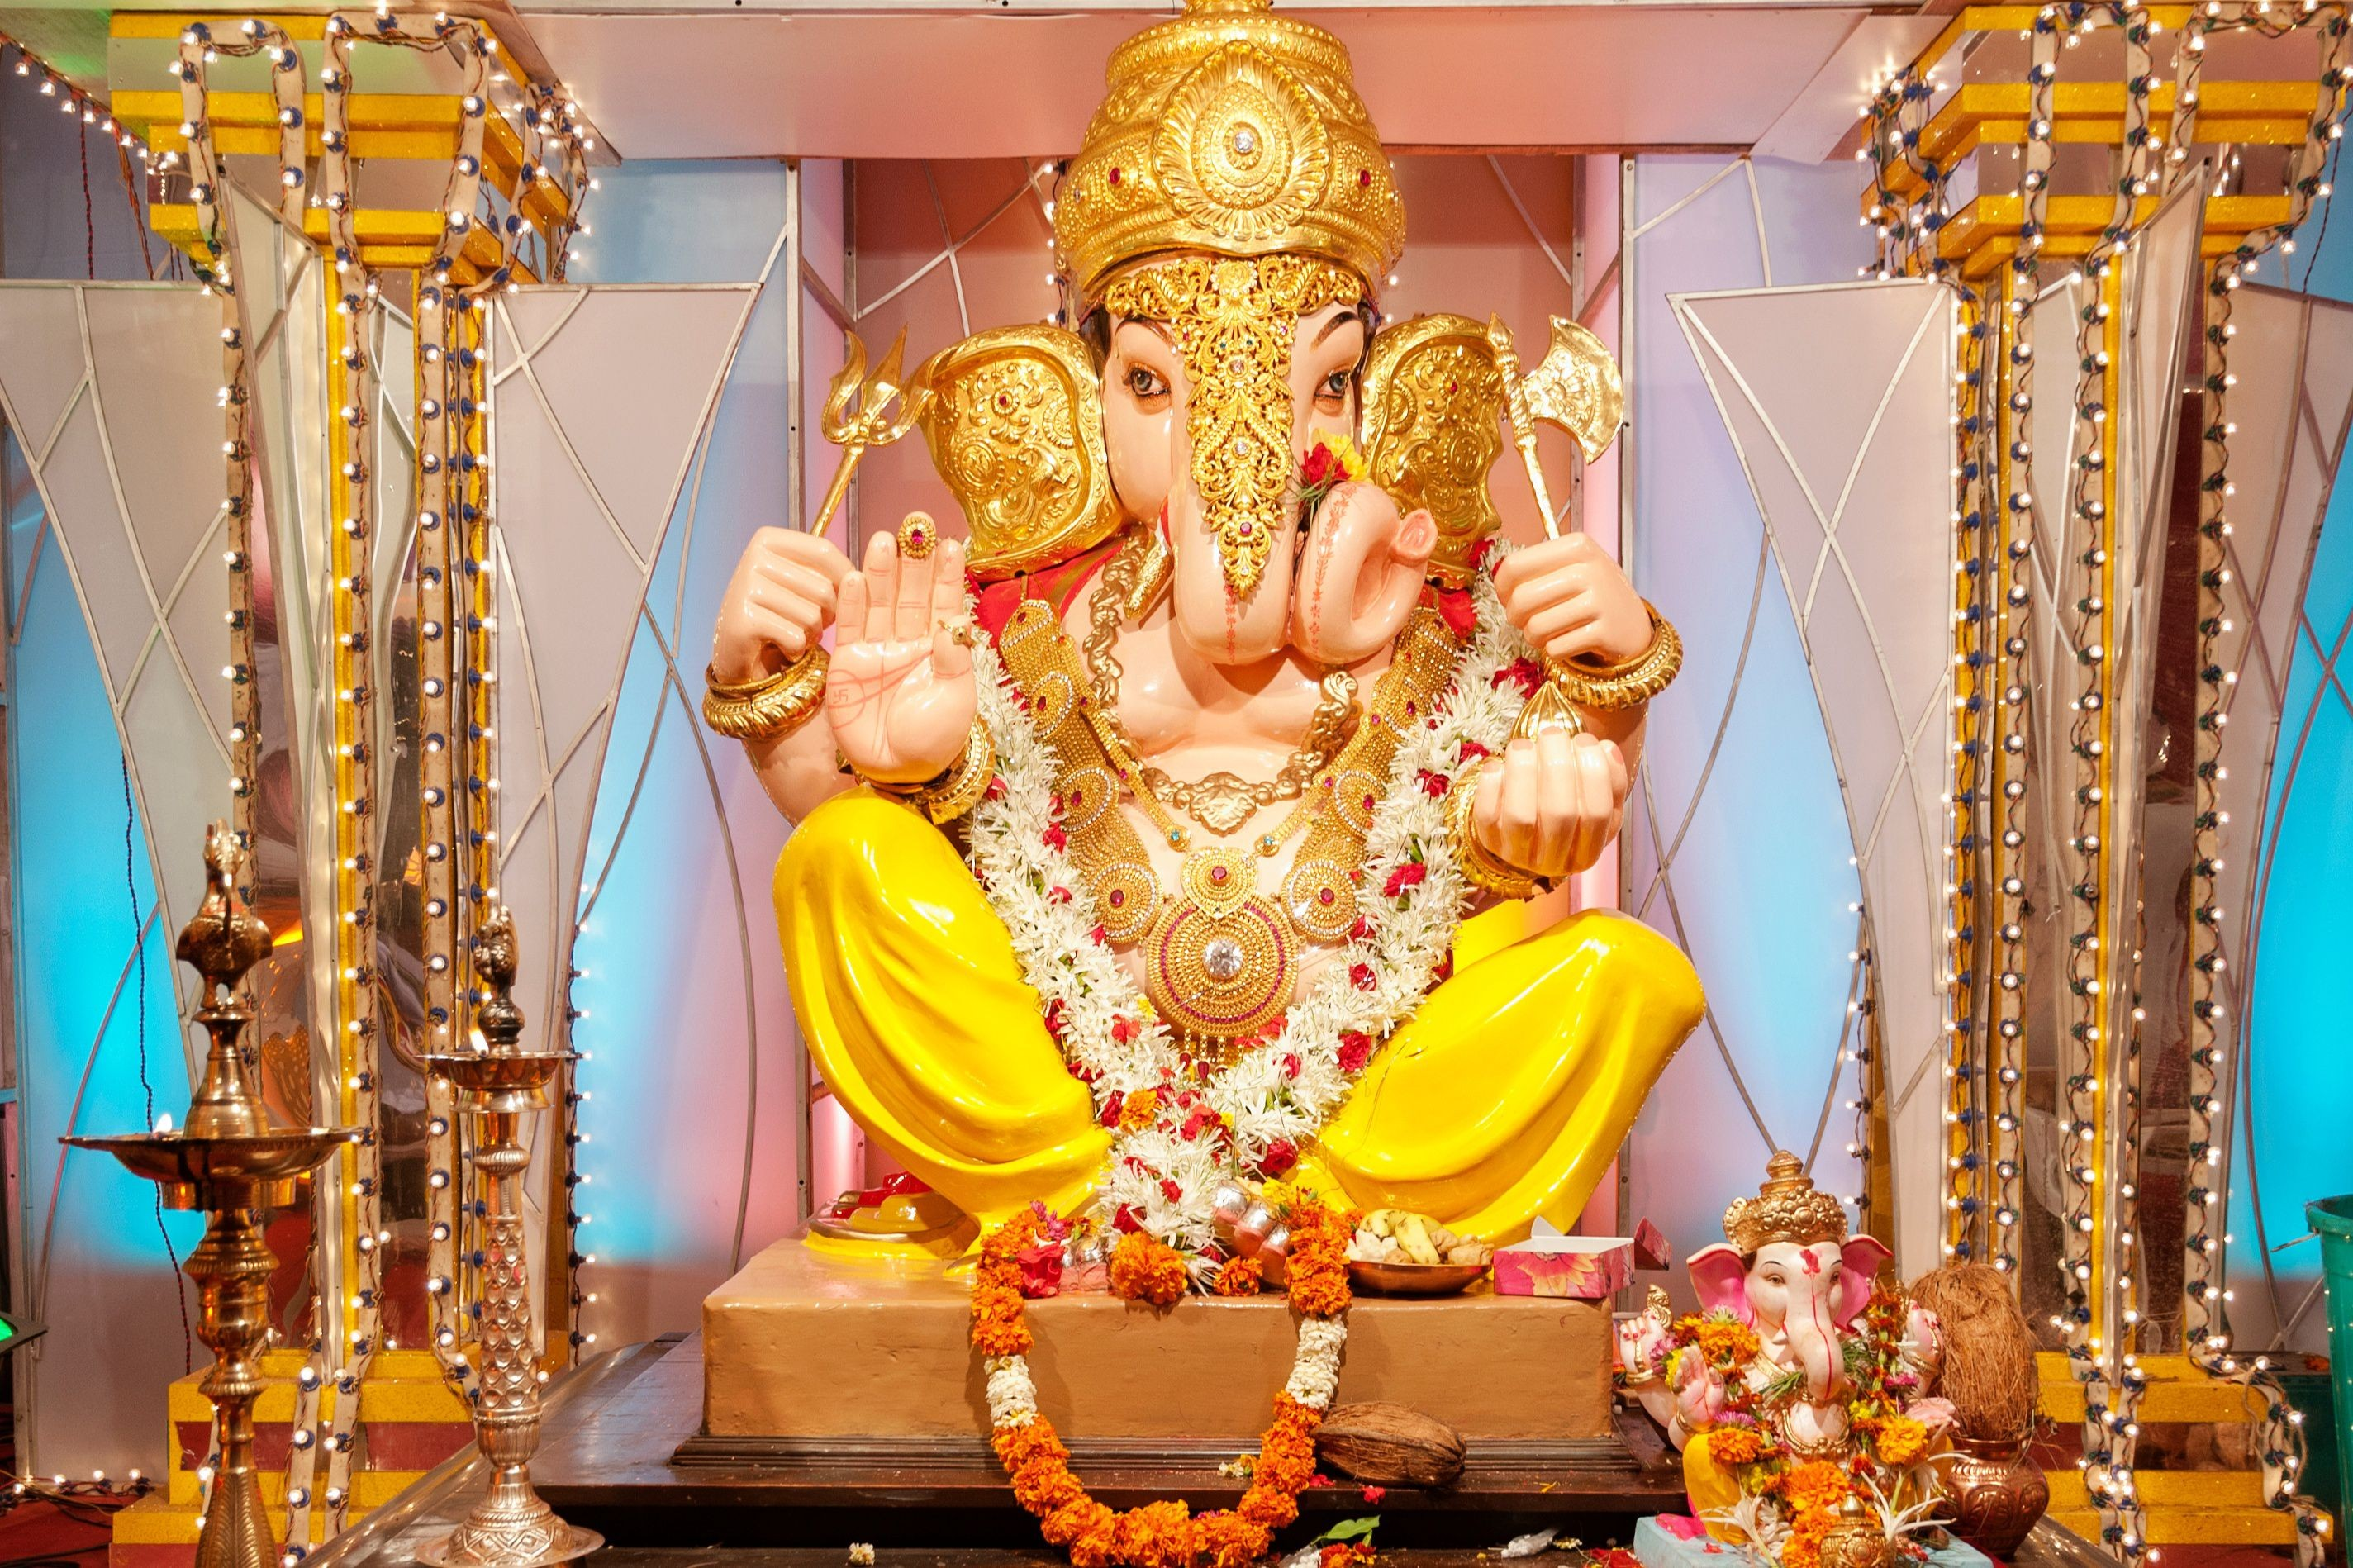 Gujarati Calendar March 2018 Más Arriba-a-fecha when is Ganesh Chaturthi In 2019 2020 and 2021 Of Gujarati Calendar March 2018 Más Recientemente Liberado 2018 Navaratri Festival In India Essential Guide